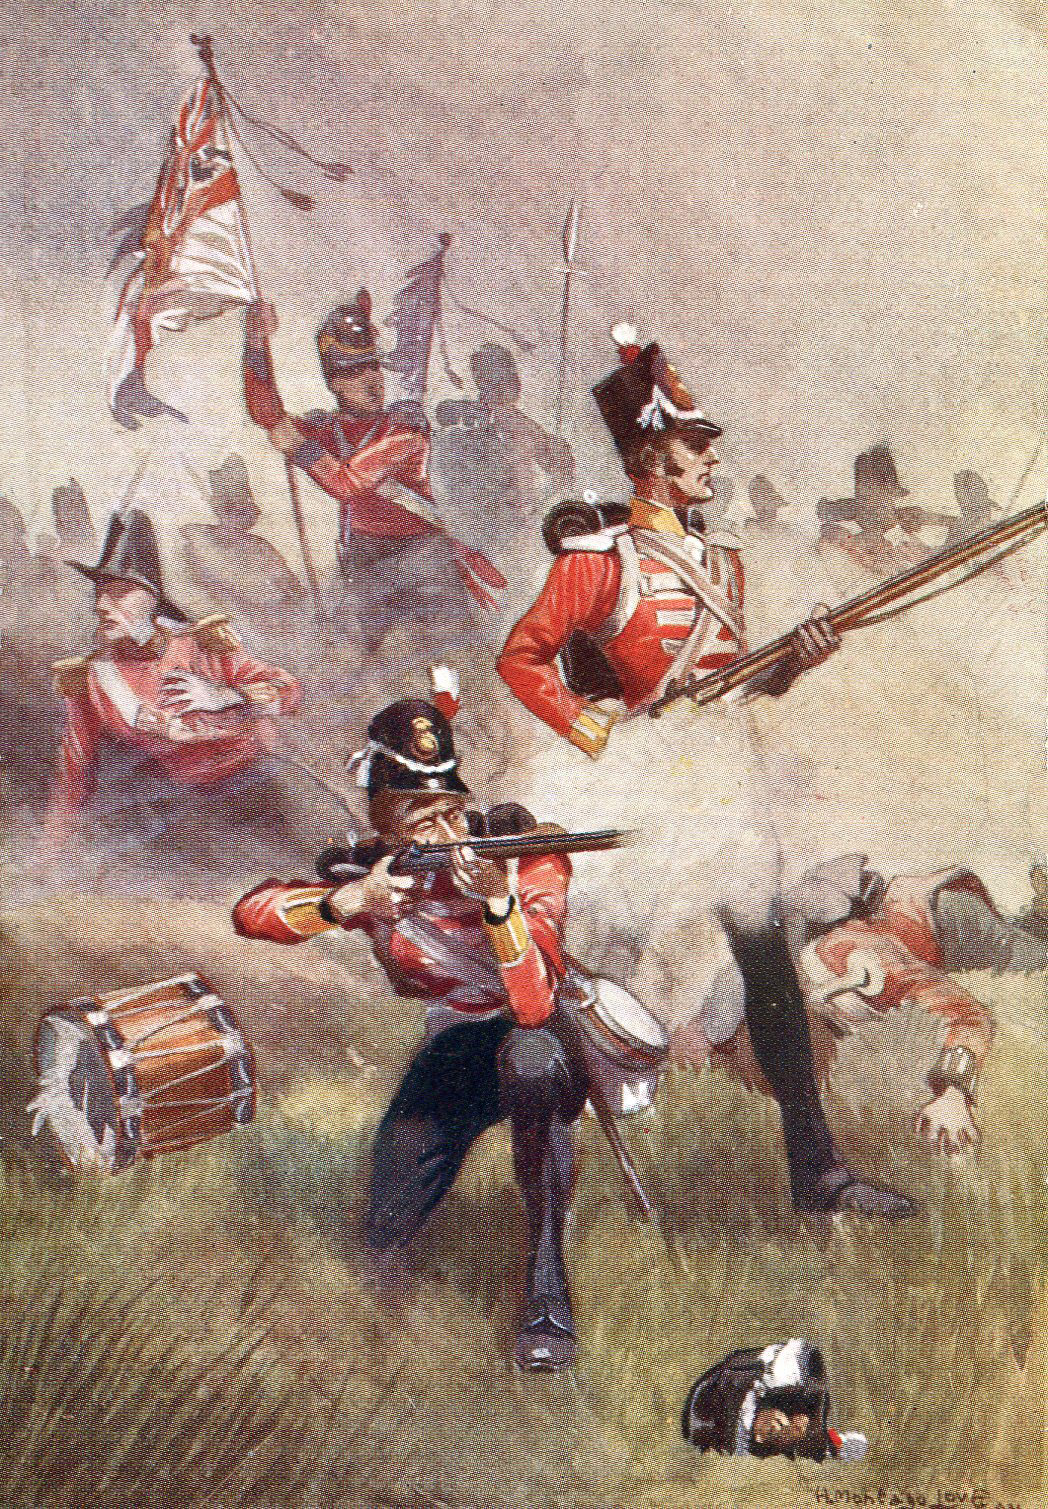 The 3rd Buffs at the Battle of Albuera on 16th May 1811 in the Peninsular War